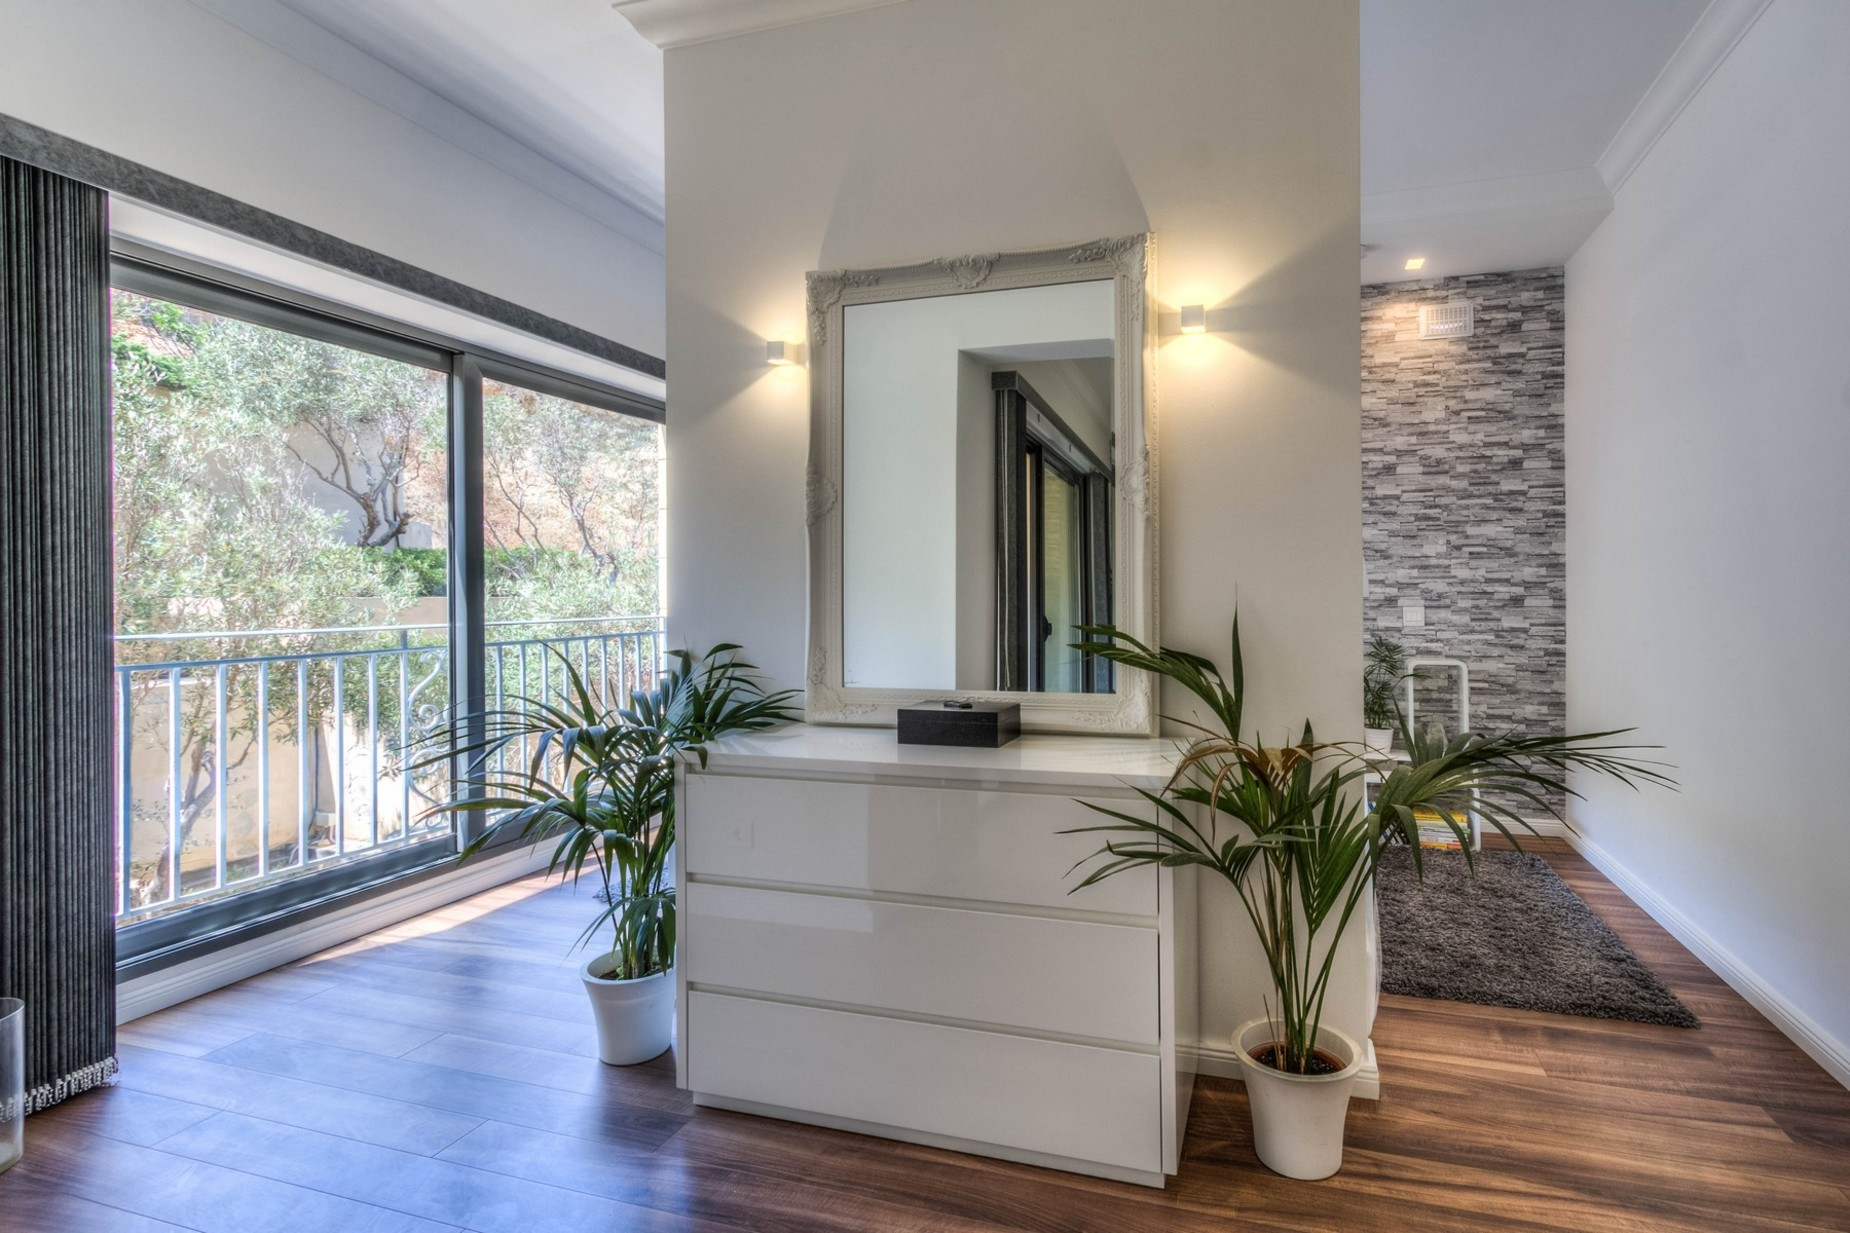 2 bed Apartment For Sale in Mellieha, Mellieha - thumb 10